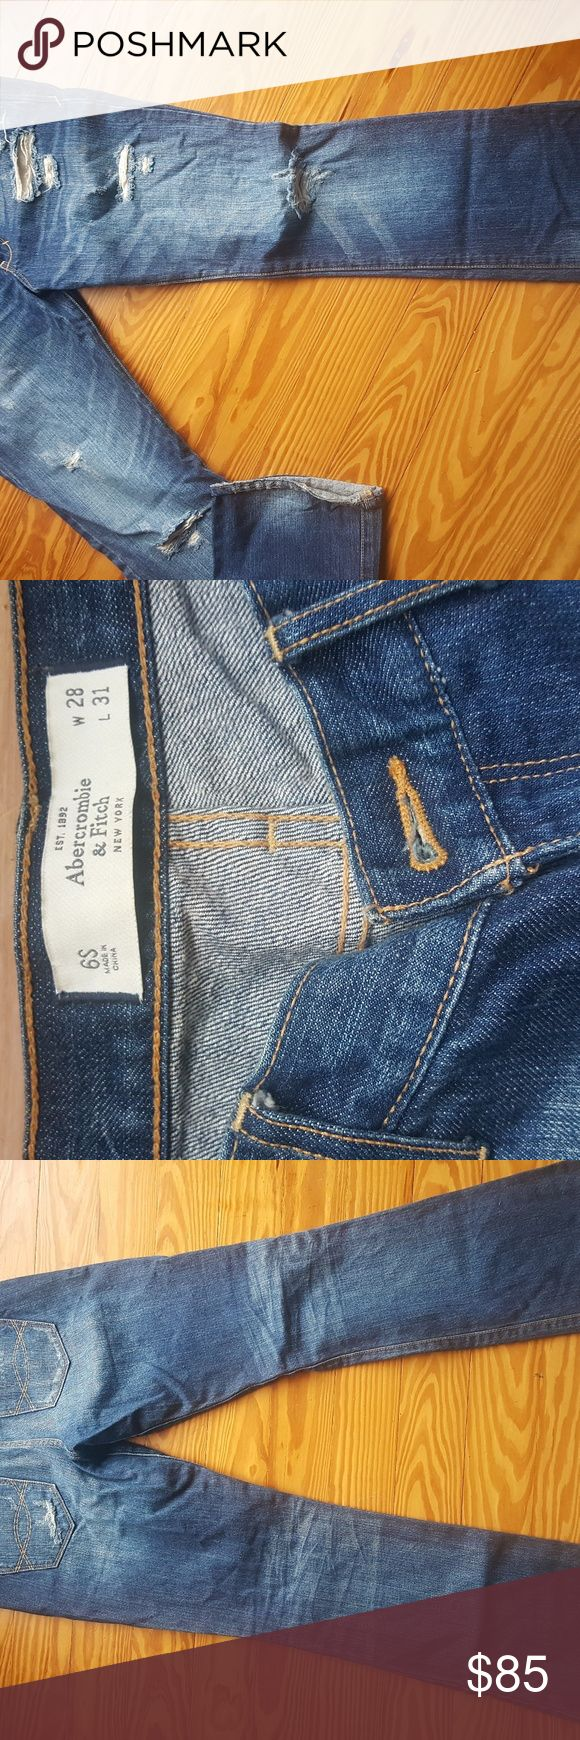 Abercrombie and Fitch Boot Cut Jeans These jeans have never been worn or washed! I just thought I would fit in them some day but they just don't fit right on me. They are distressed and the color looks awesome in person. Abercrombie & Fitch Jeans Boot Cut